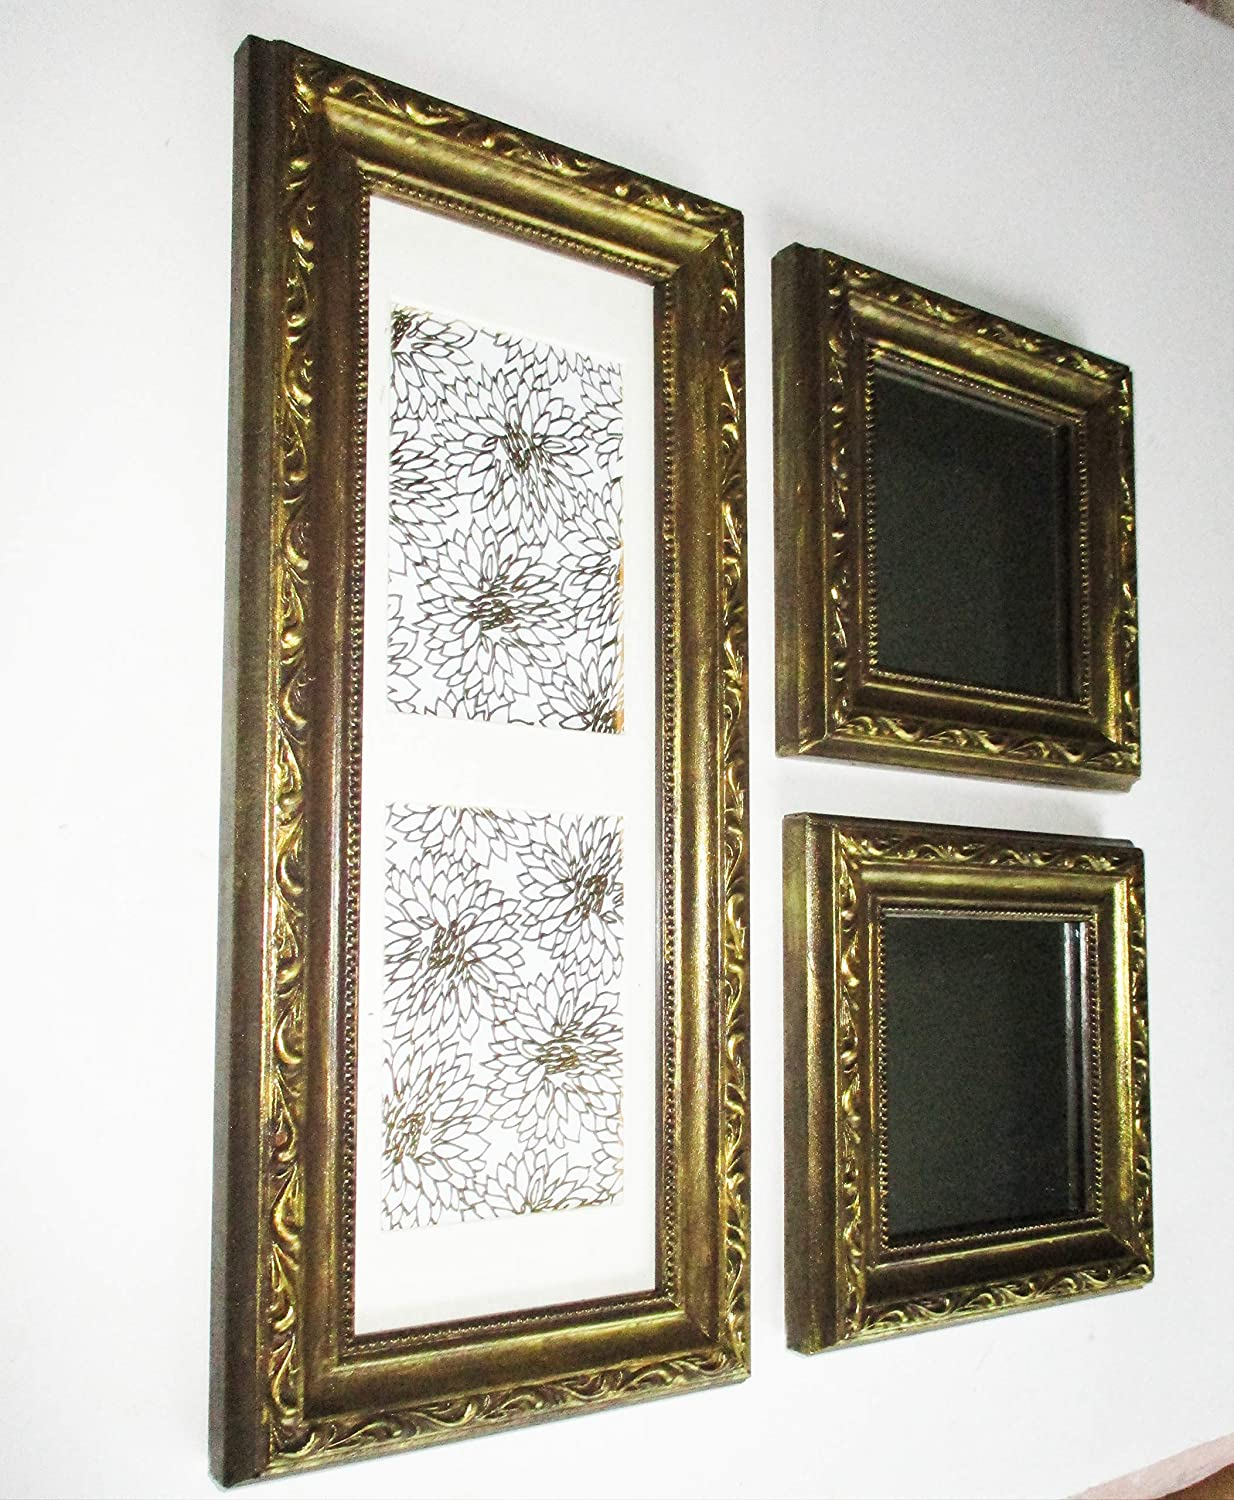 Baroque Gold Mirrors Wall Mirrors and Picture Frame Set, Baroque Design, Upcycled Vintage, Wood,  Wall Decor, Wall Gallery, Mirrors Collection, Mirrors Set, Double Slot  Picture ...